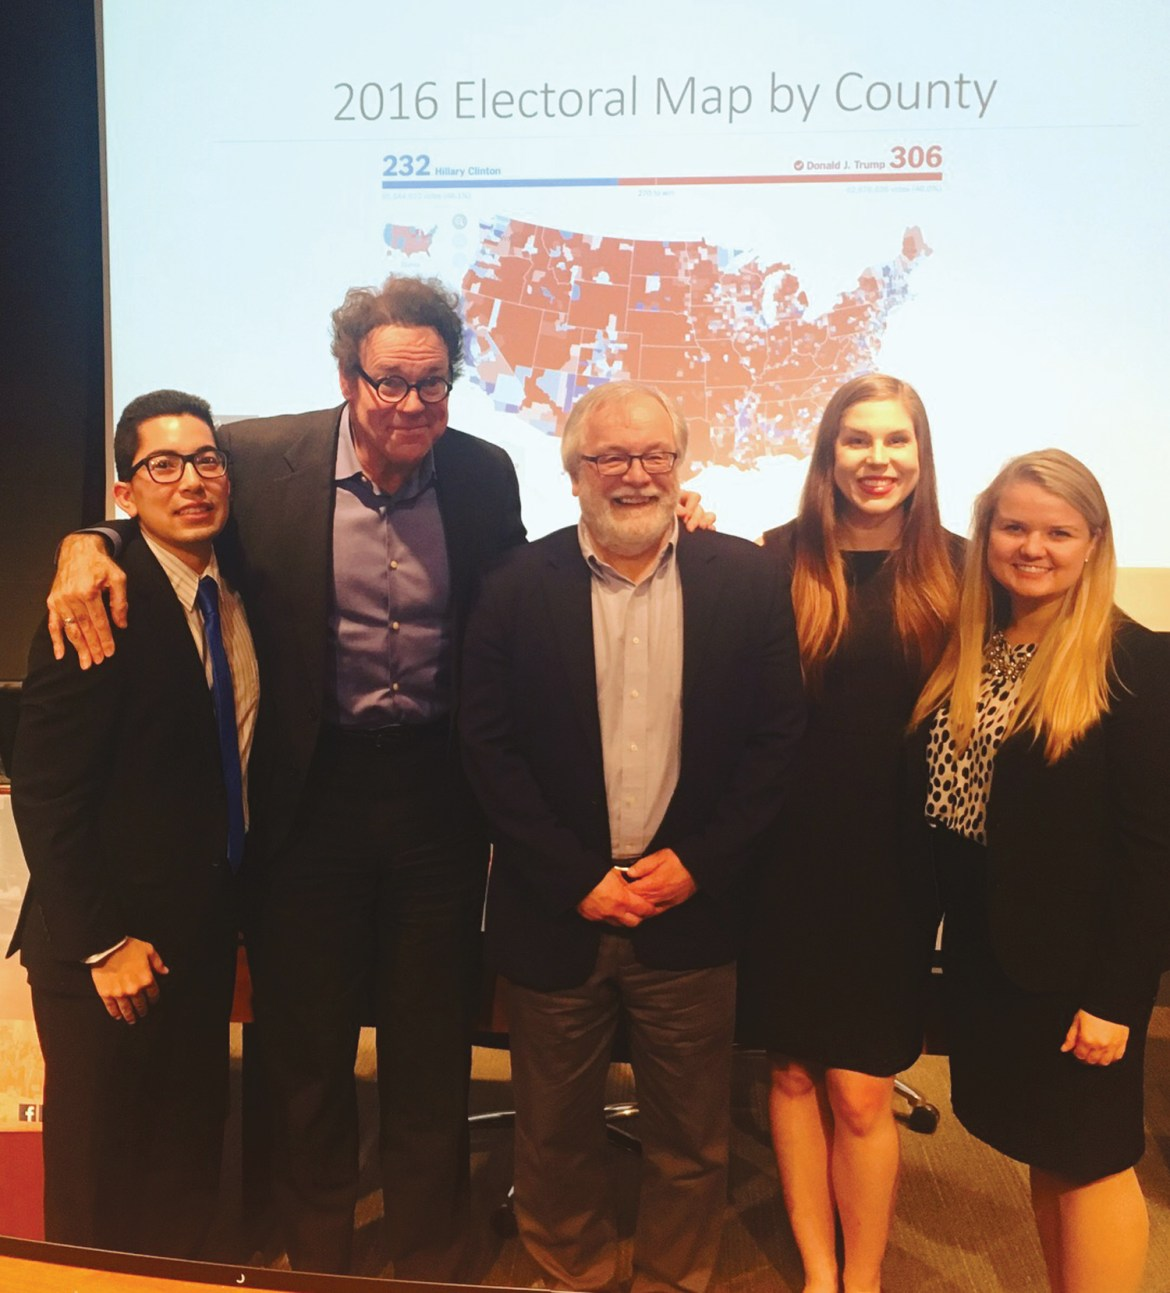 Two law professors debated the merits of the Electoral College and it's place in today's world.